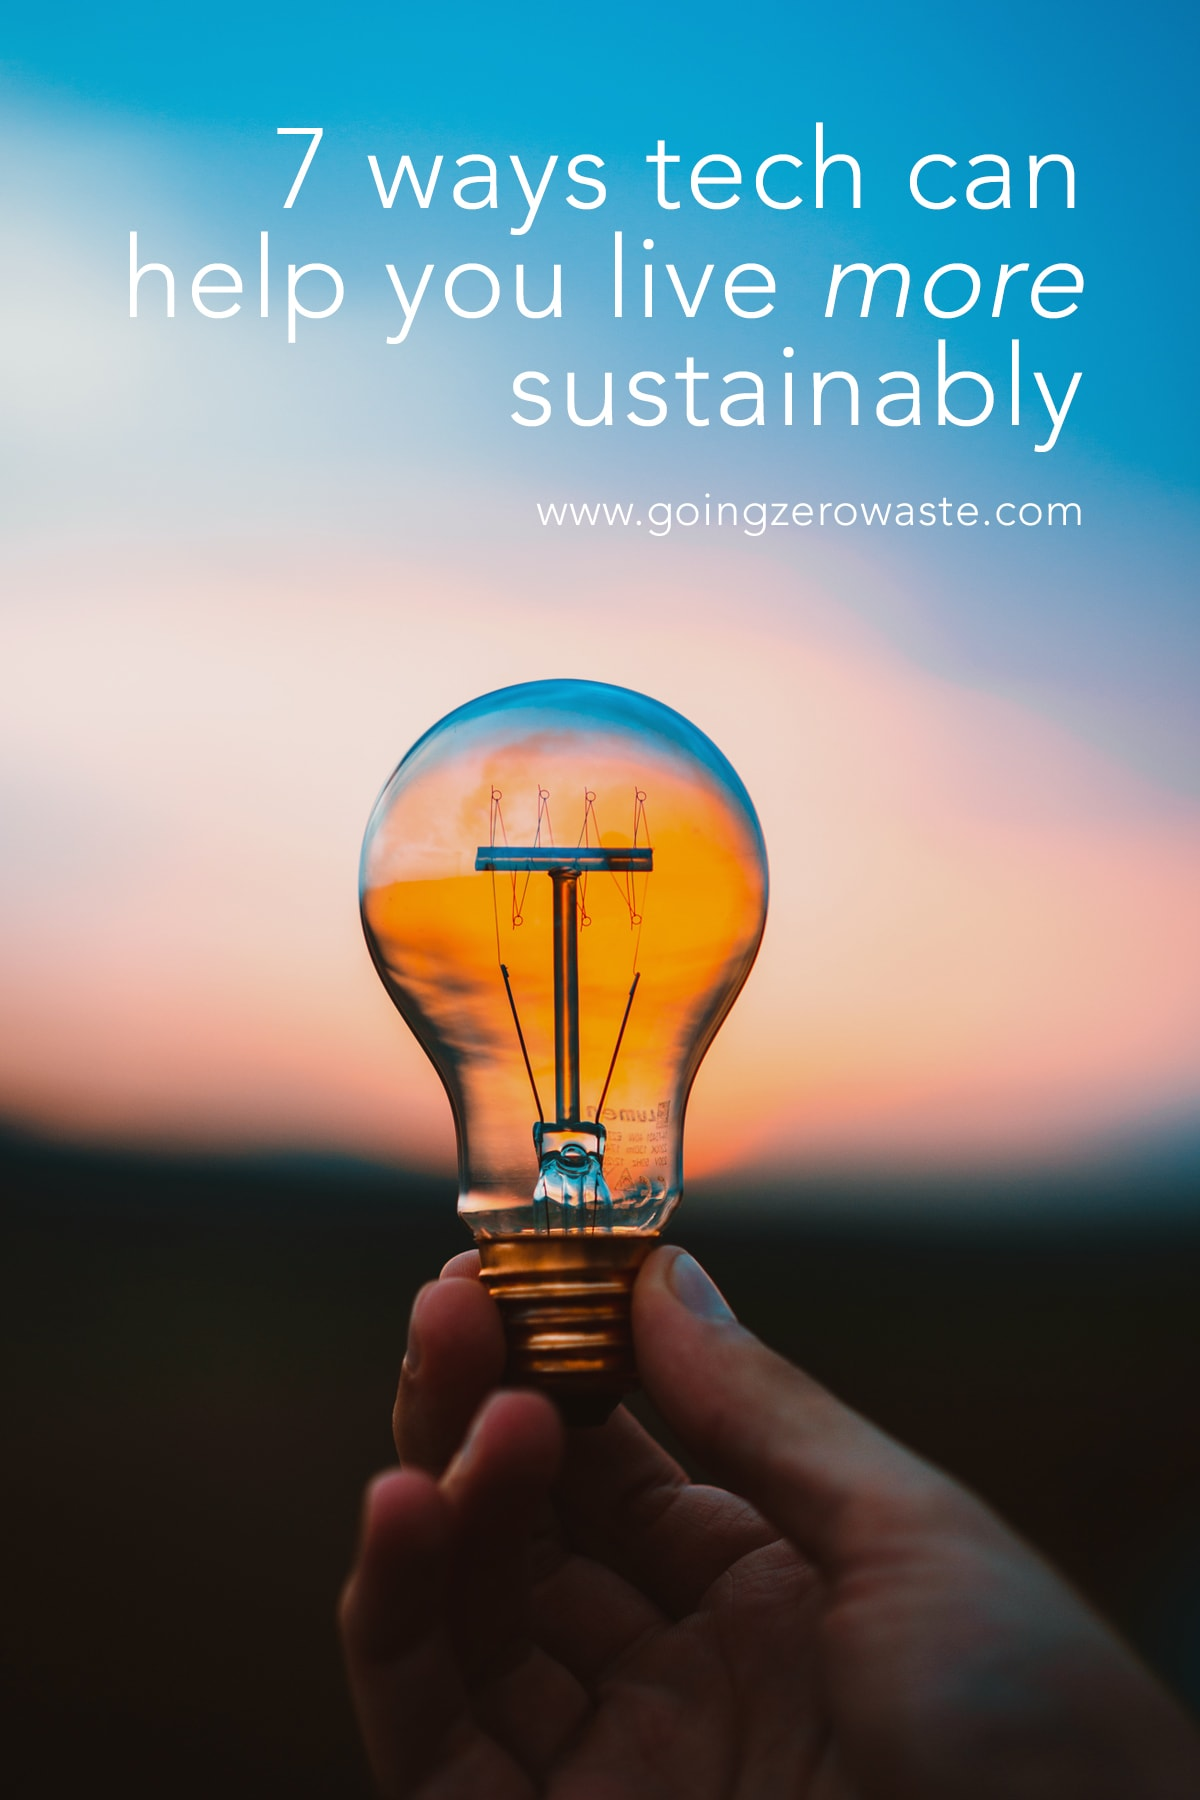 7 ways tech can help you live more sustainably from www.goingzerowaste.com #ecofriendly #tech #zerowaste #gadgets #giftguide #sustainable #saveenergy #savemoney